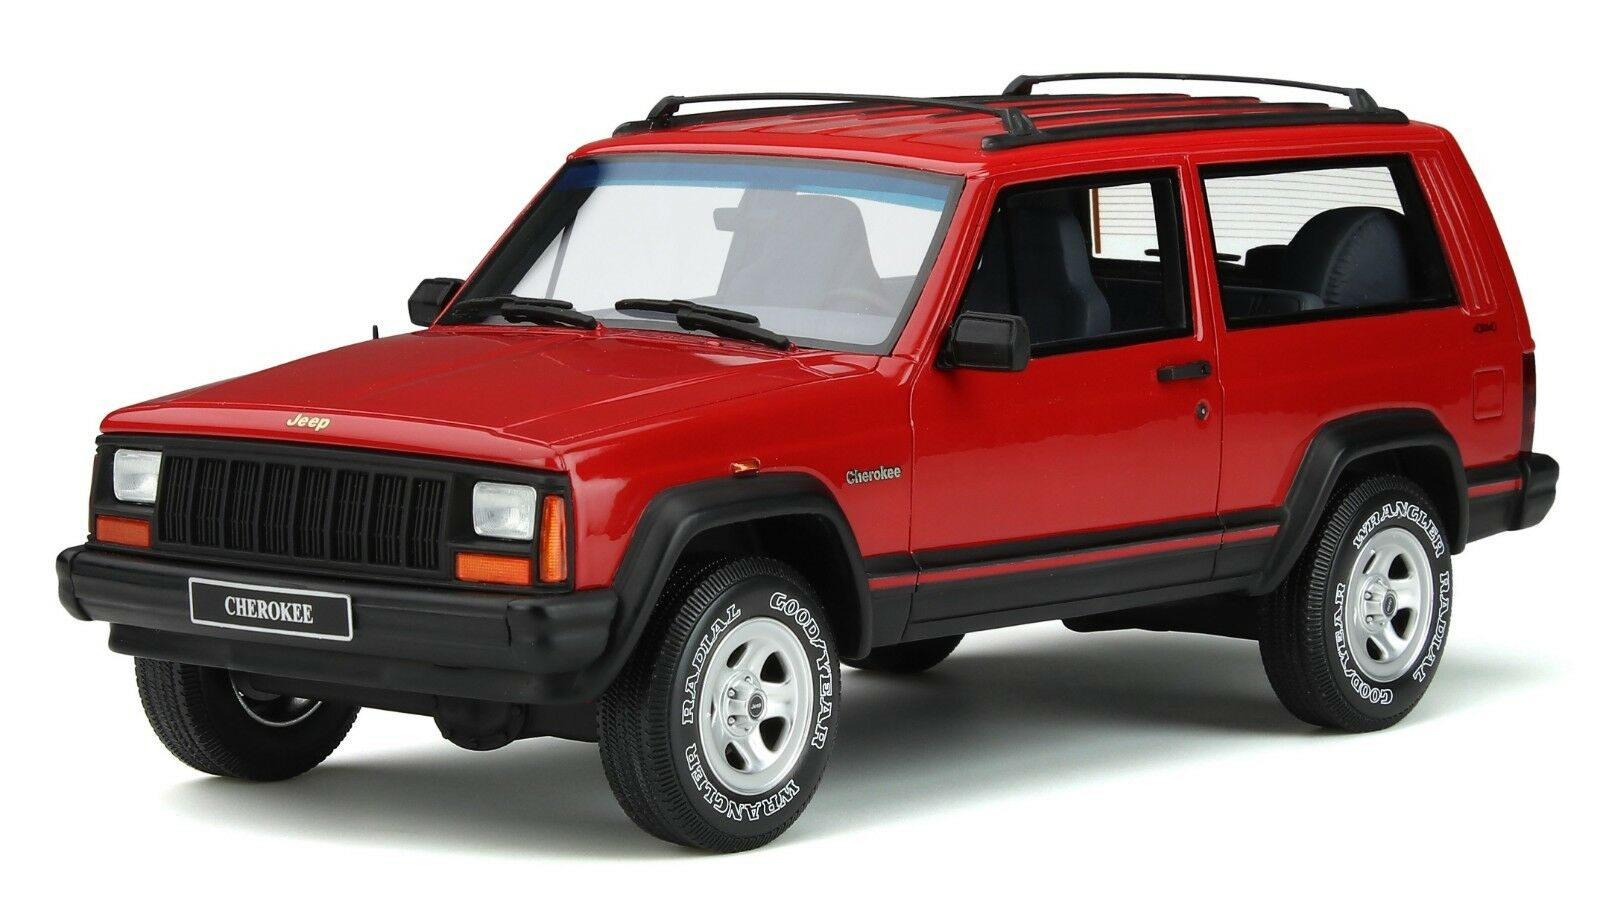 JEEP CHEROKEE SPORT Flame rouge limitée 999 Pièces OTTO MODELS 1 18 neuf dans sa boîte NEUF